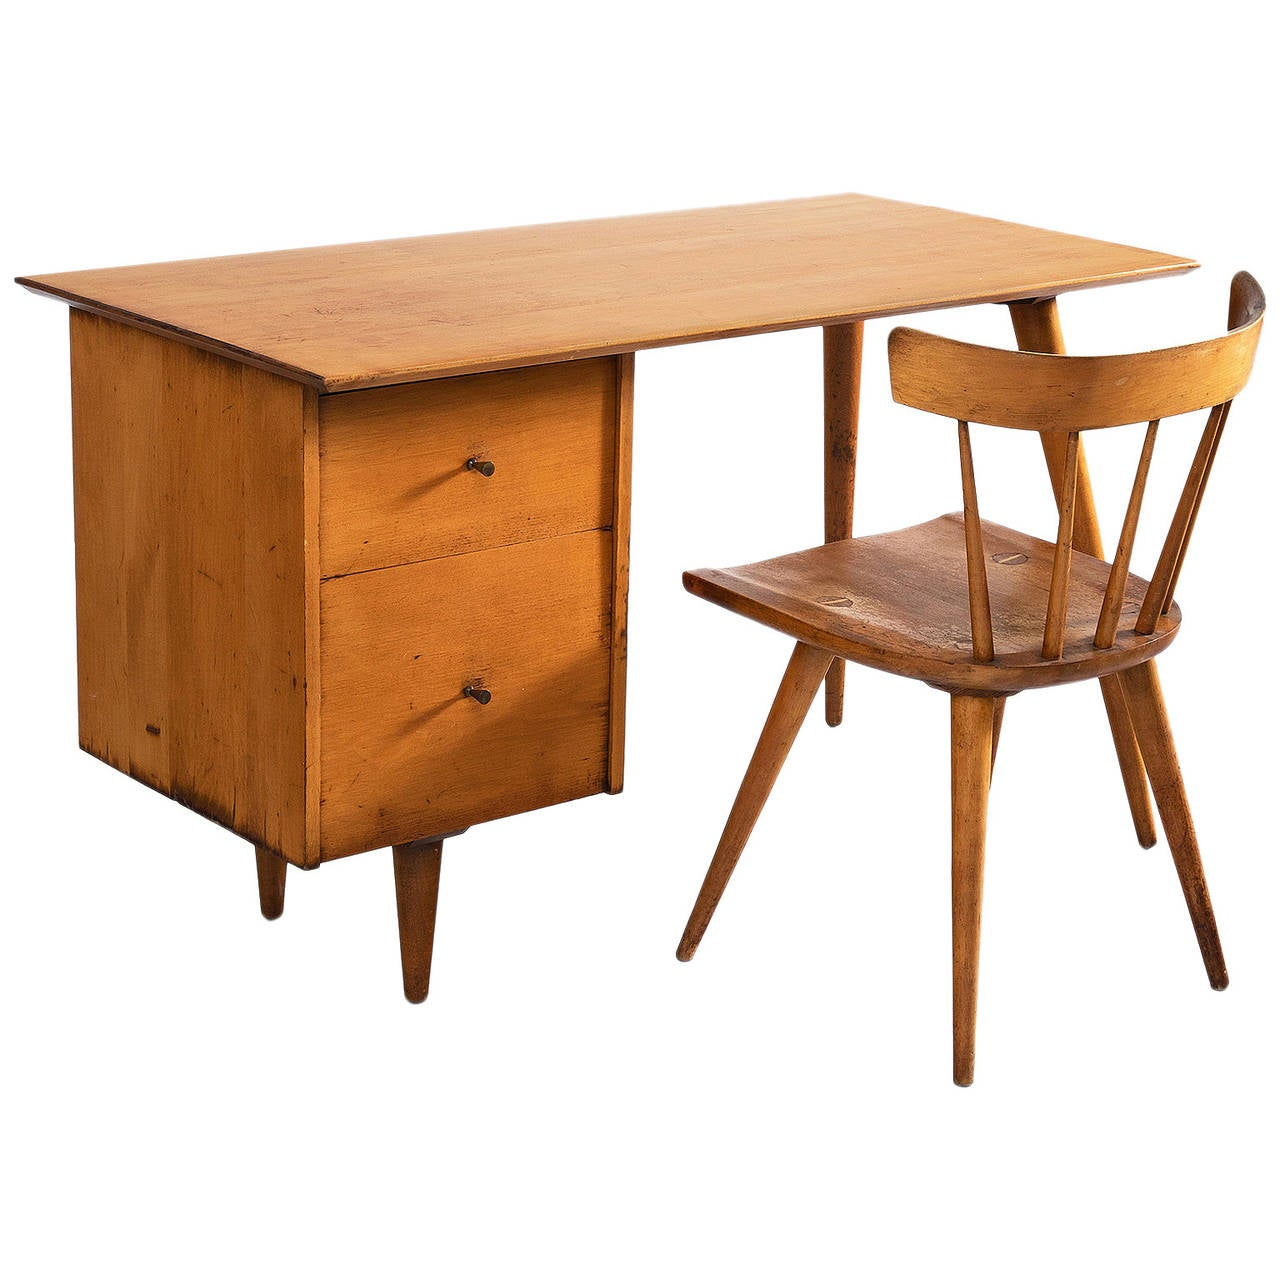 Paul McCobb Desk and Chair at 1stdibs